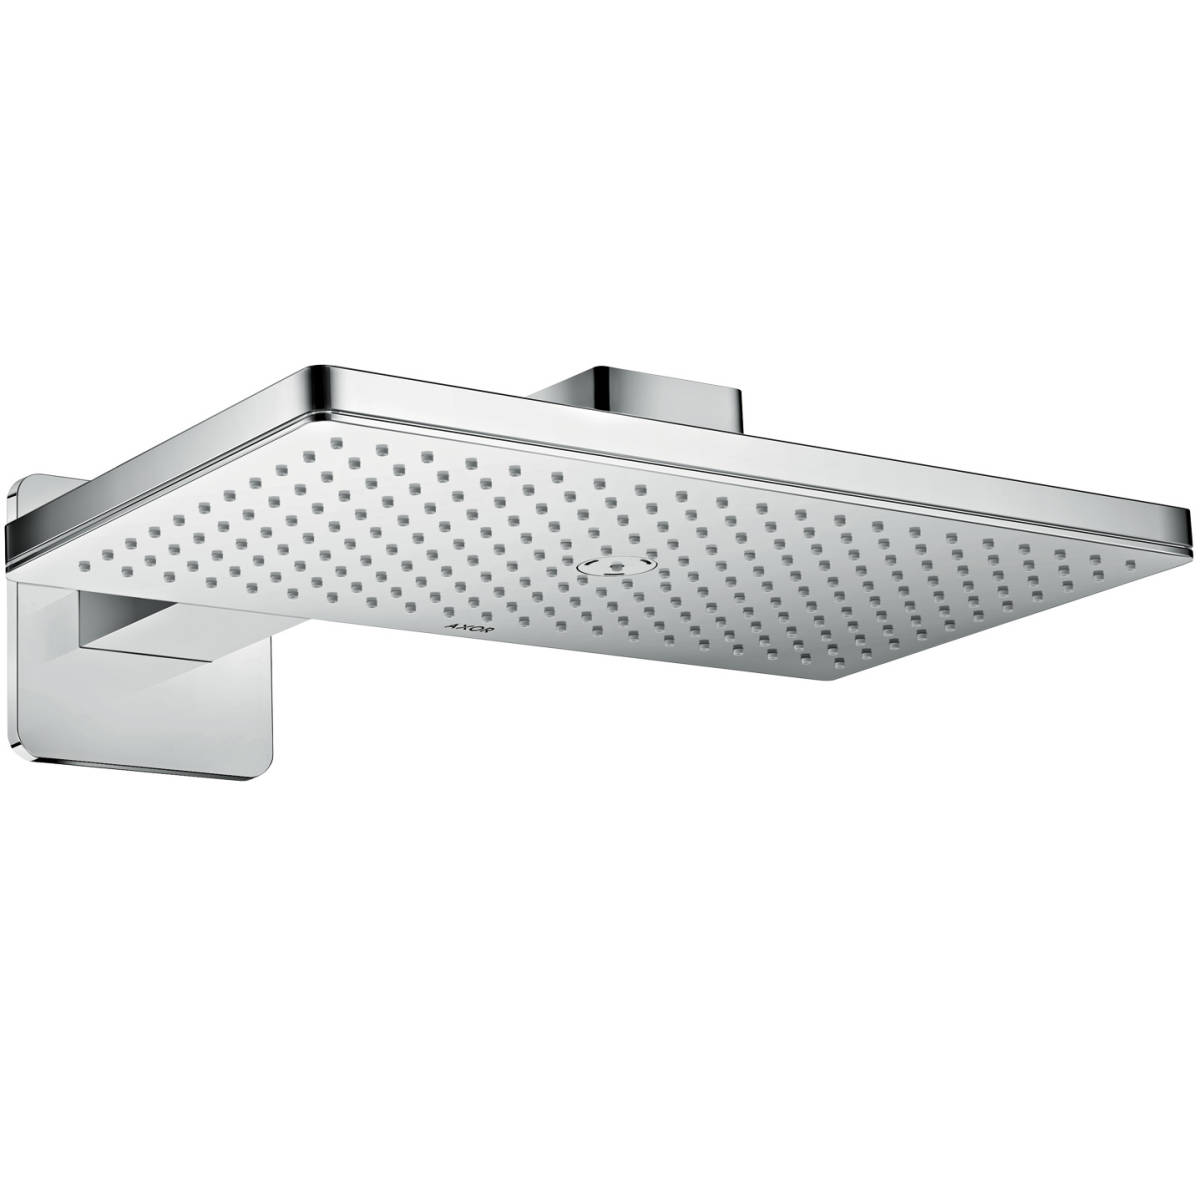 Overhead shower 460/300 1jet with shower arm and softcube escutcheon, Chrome, 35274000